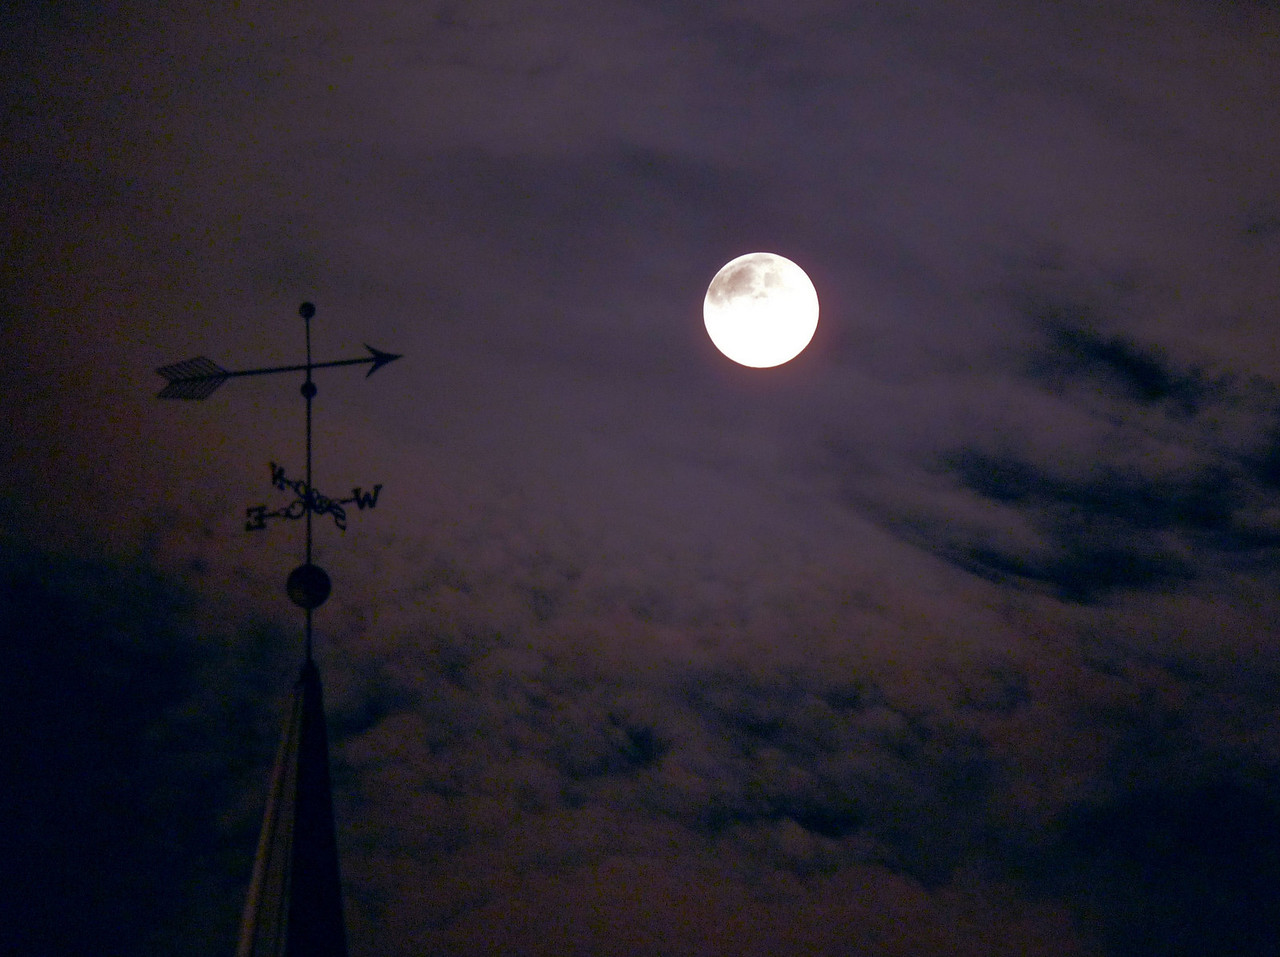 August 6, 2009<br /> Weathervane on church steeple<br />  ....shoot for the moon!